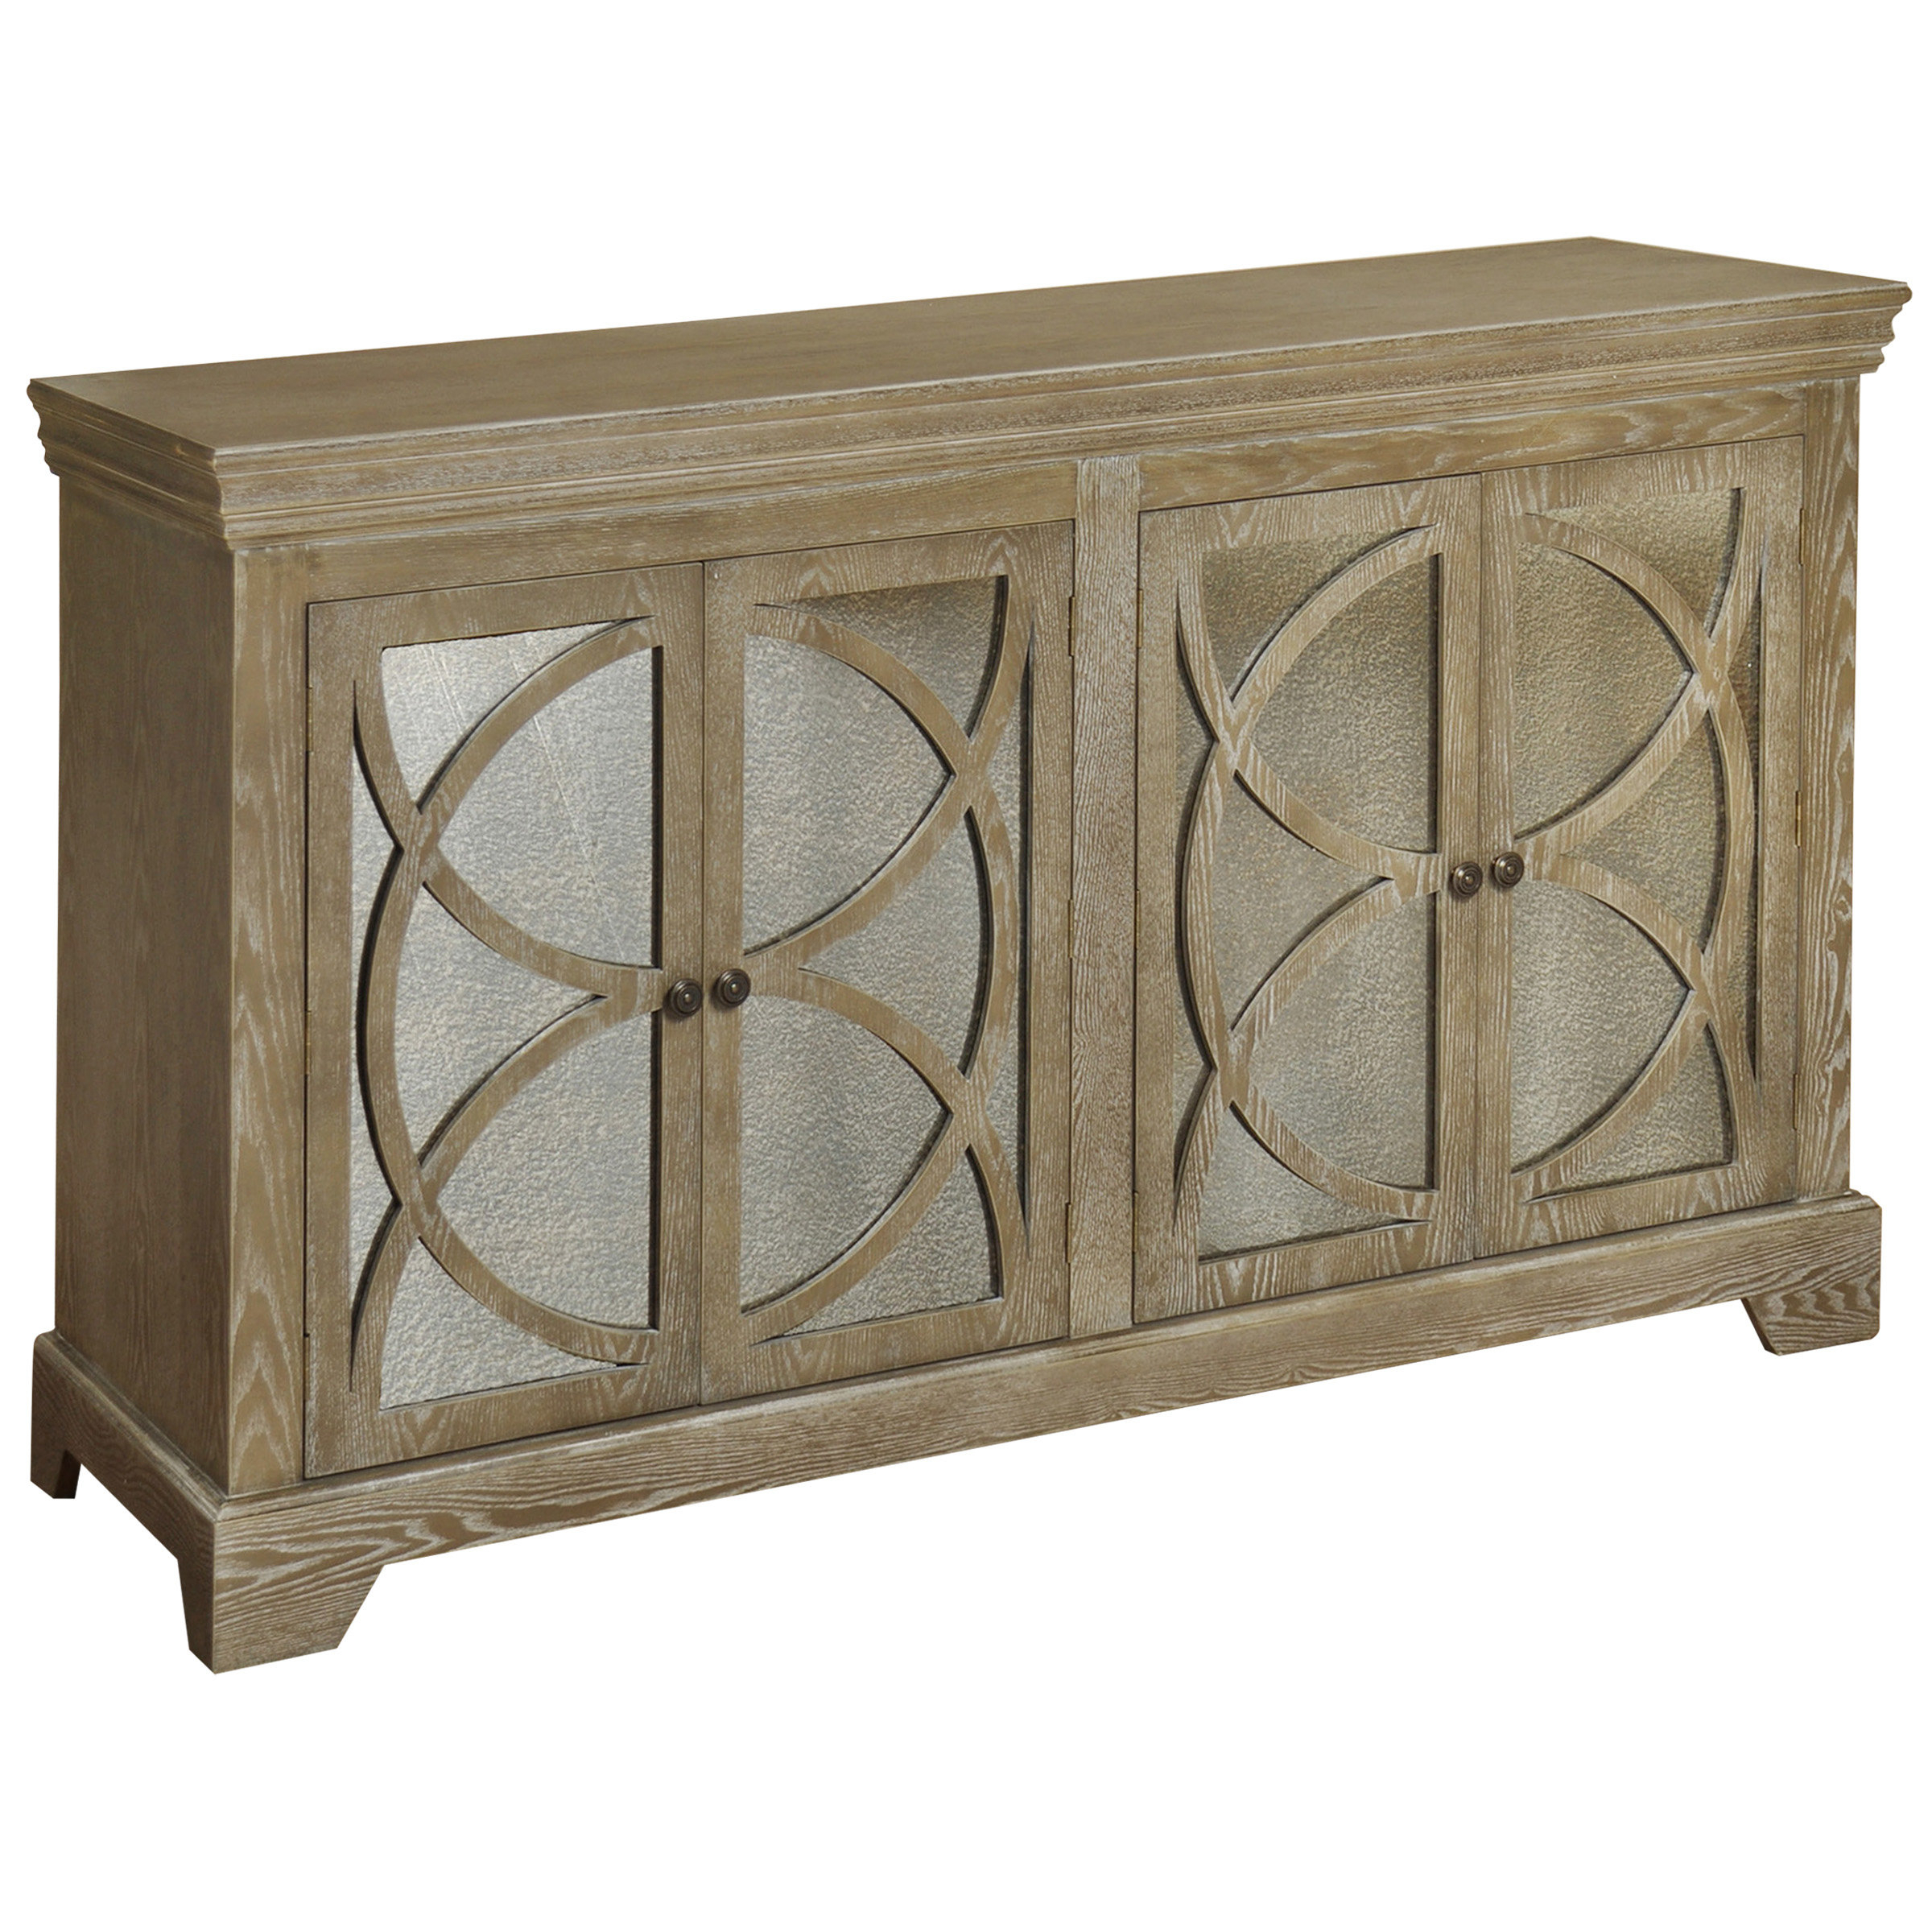 Keith 4 Door Credenza | Wayfair For Kieth 4 Door Credenzas (View 14 of 20)